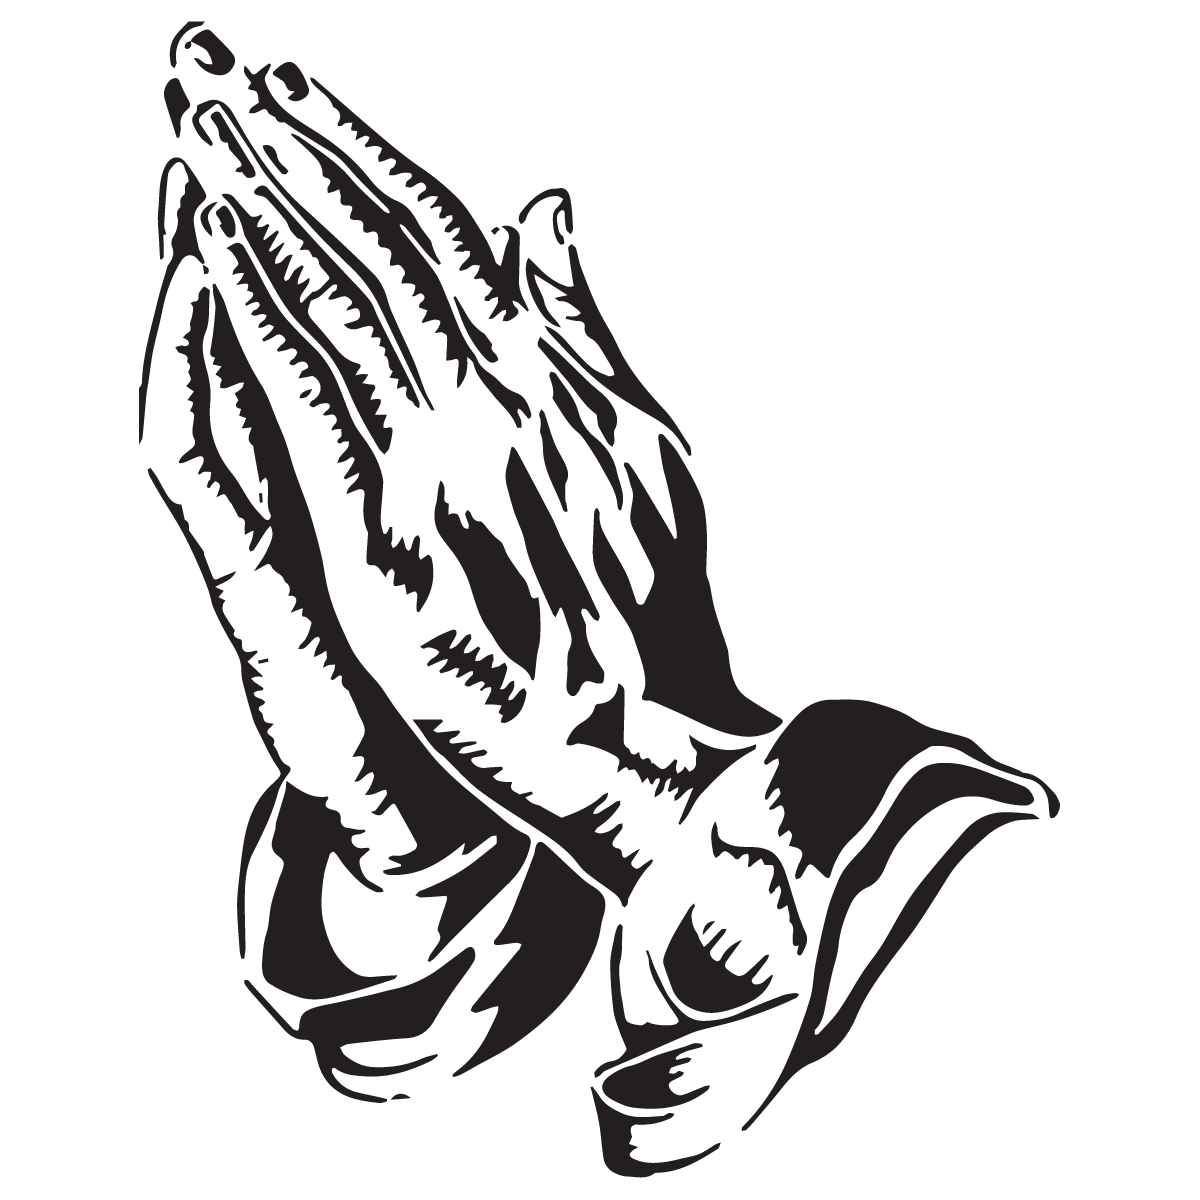 hands-prayer-.png